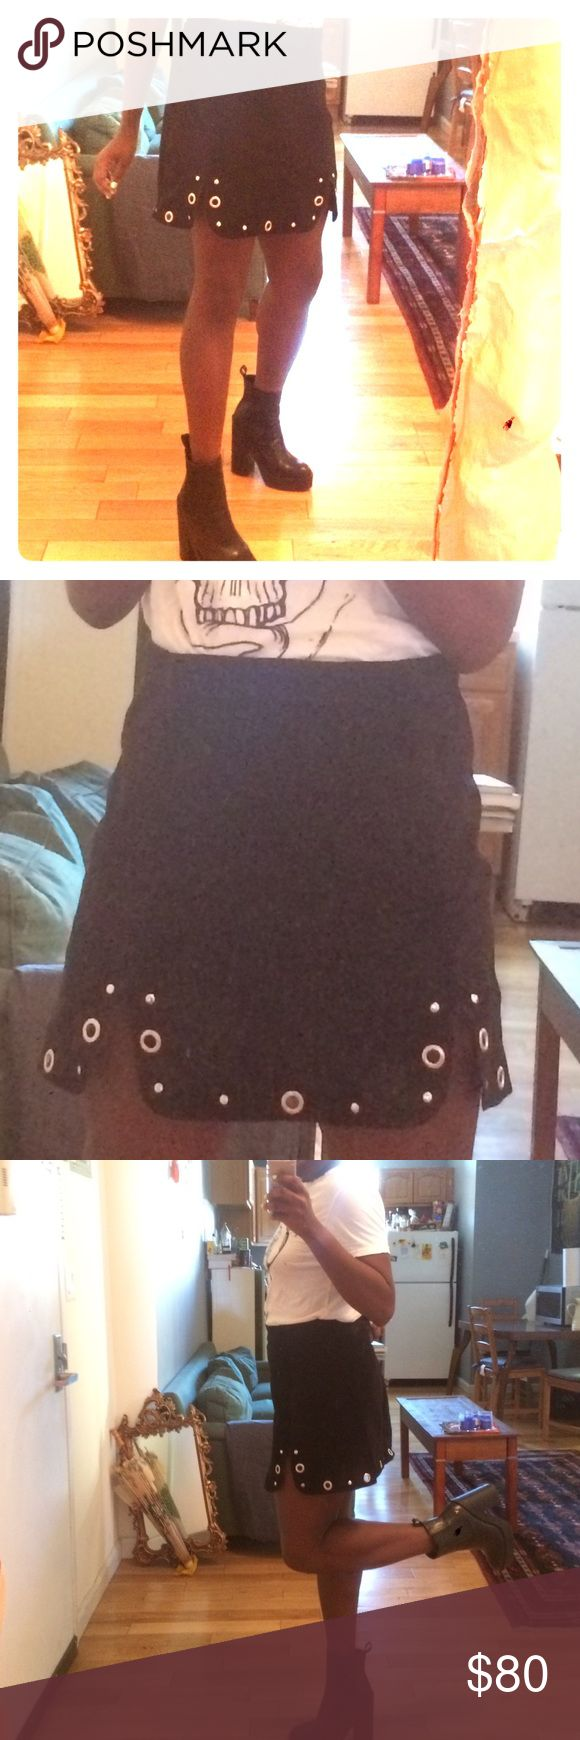 Topshop Suede Skirt w/ grommets This is a topshop skirt i got last season that unfortunately no longer fits me or i would be wearing it every day this fall! It is black suede with two little adorable cuts over each leg. It's in wonderful condition, but i must admit i have no clue how to wash it? Anyways beautiful find! my loss is your gain! Topshop Skirts Mini